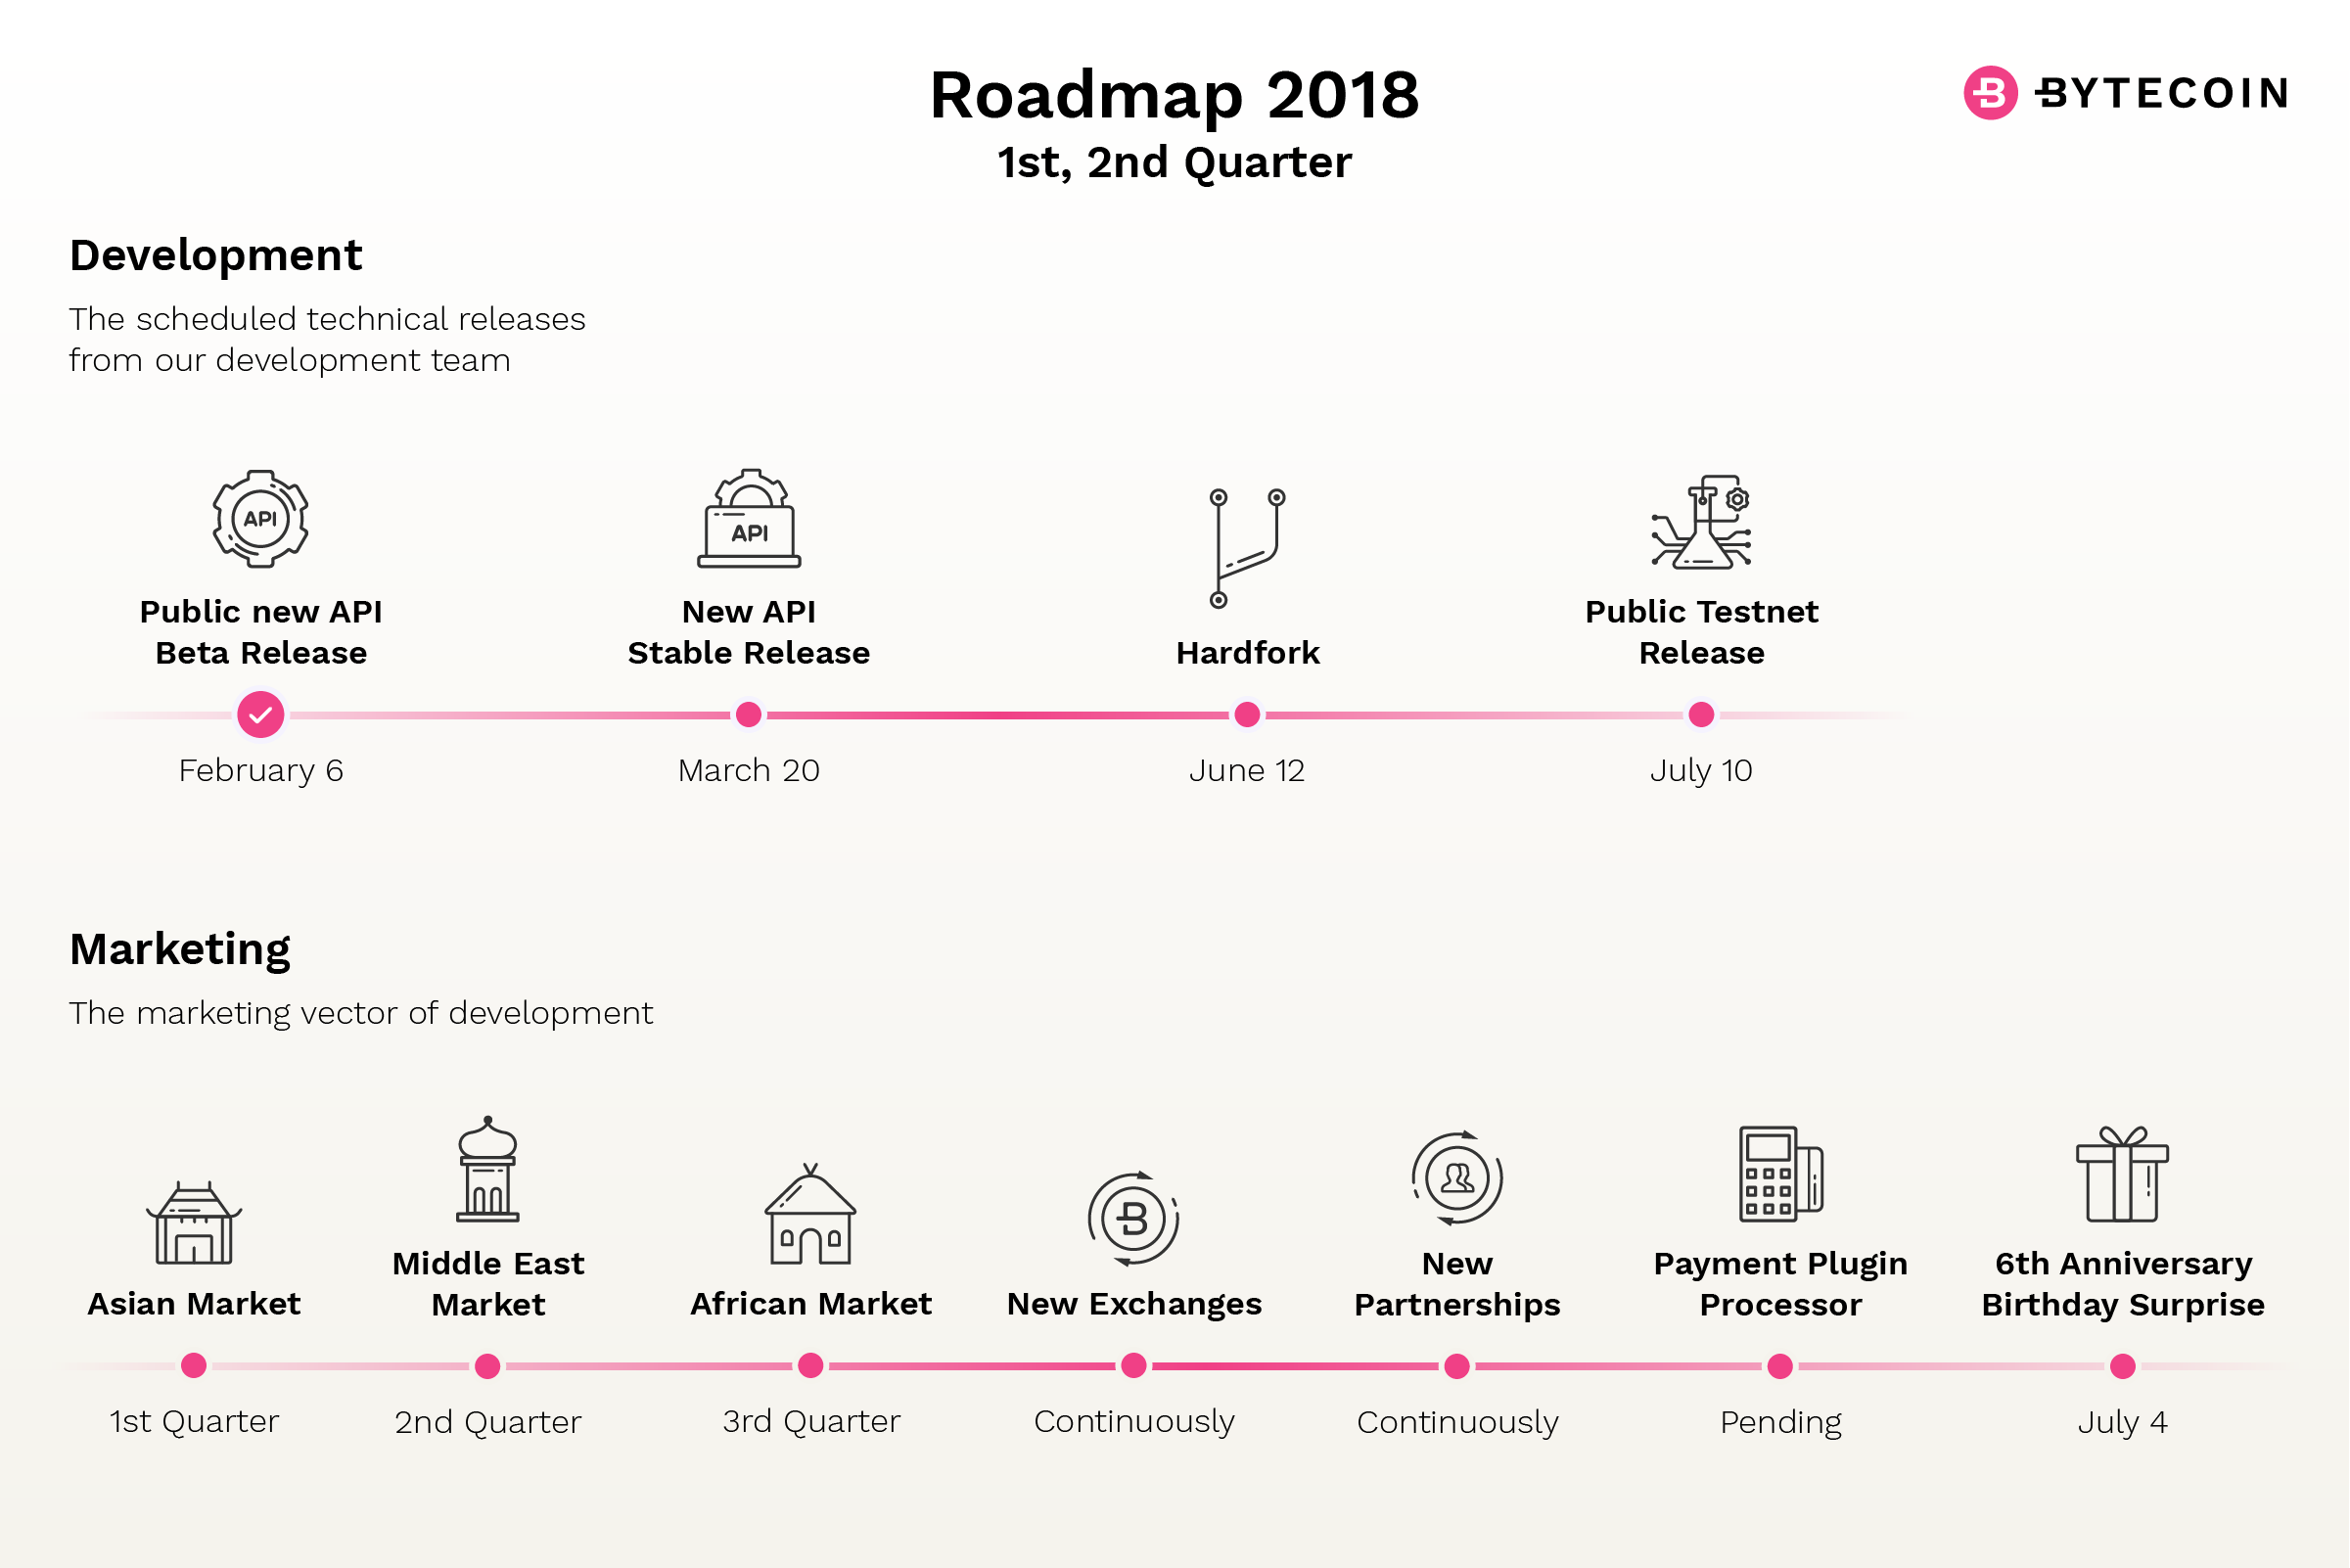 Bytecoin 2018 Roadmap (1, 2 Quarter)